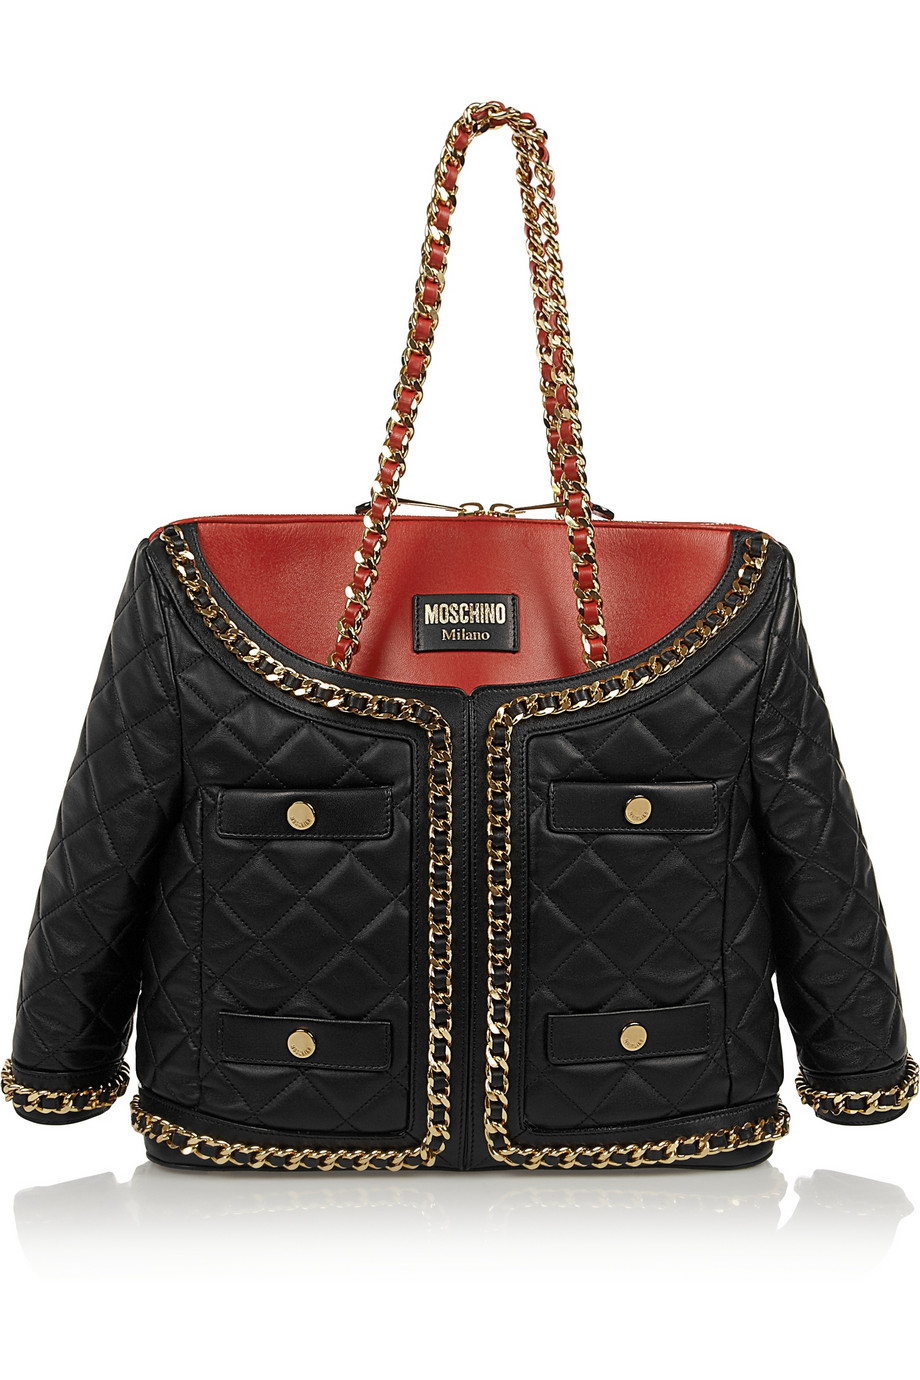 Moschino Jacket Quilted Leather Shoulder Bag In Black Lyst